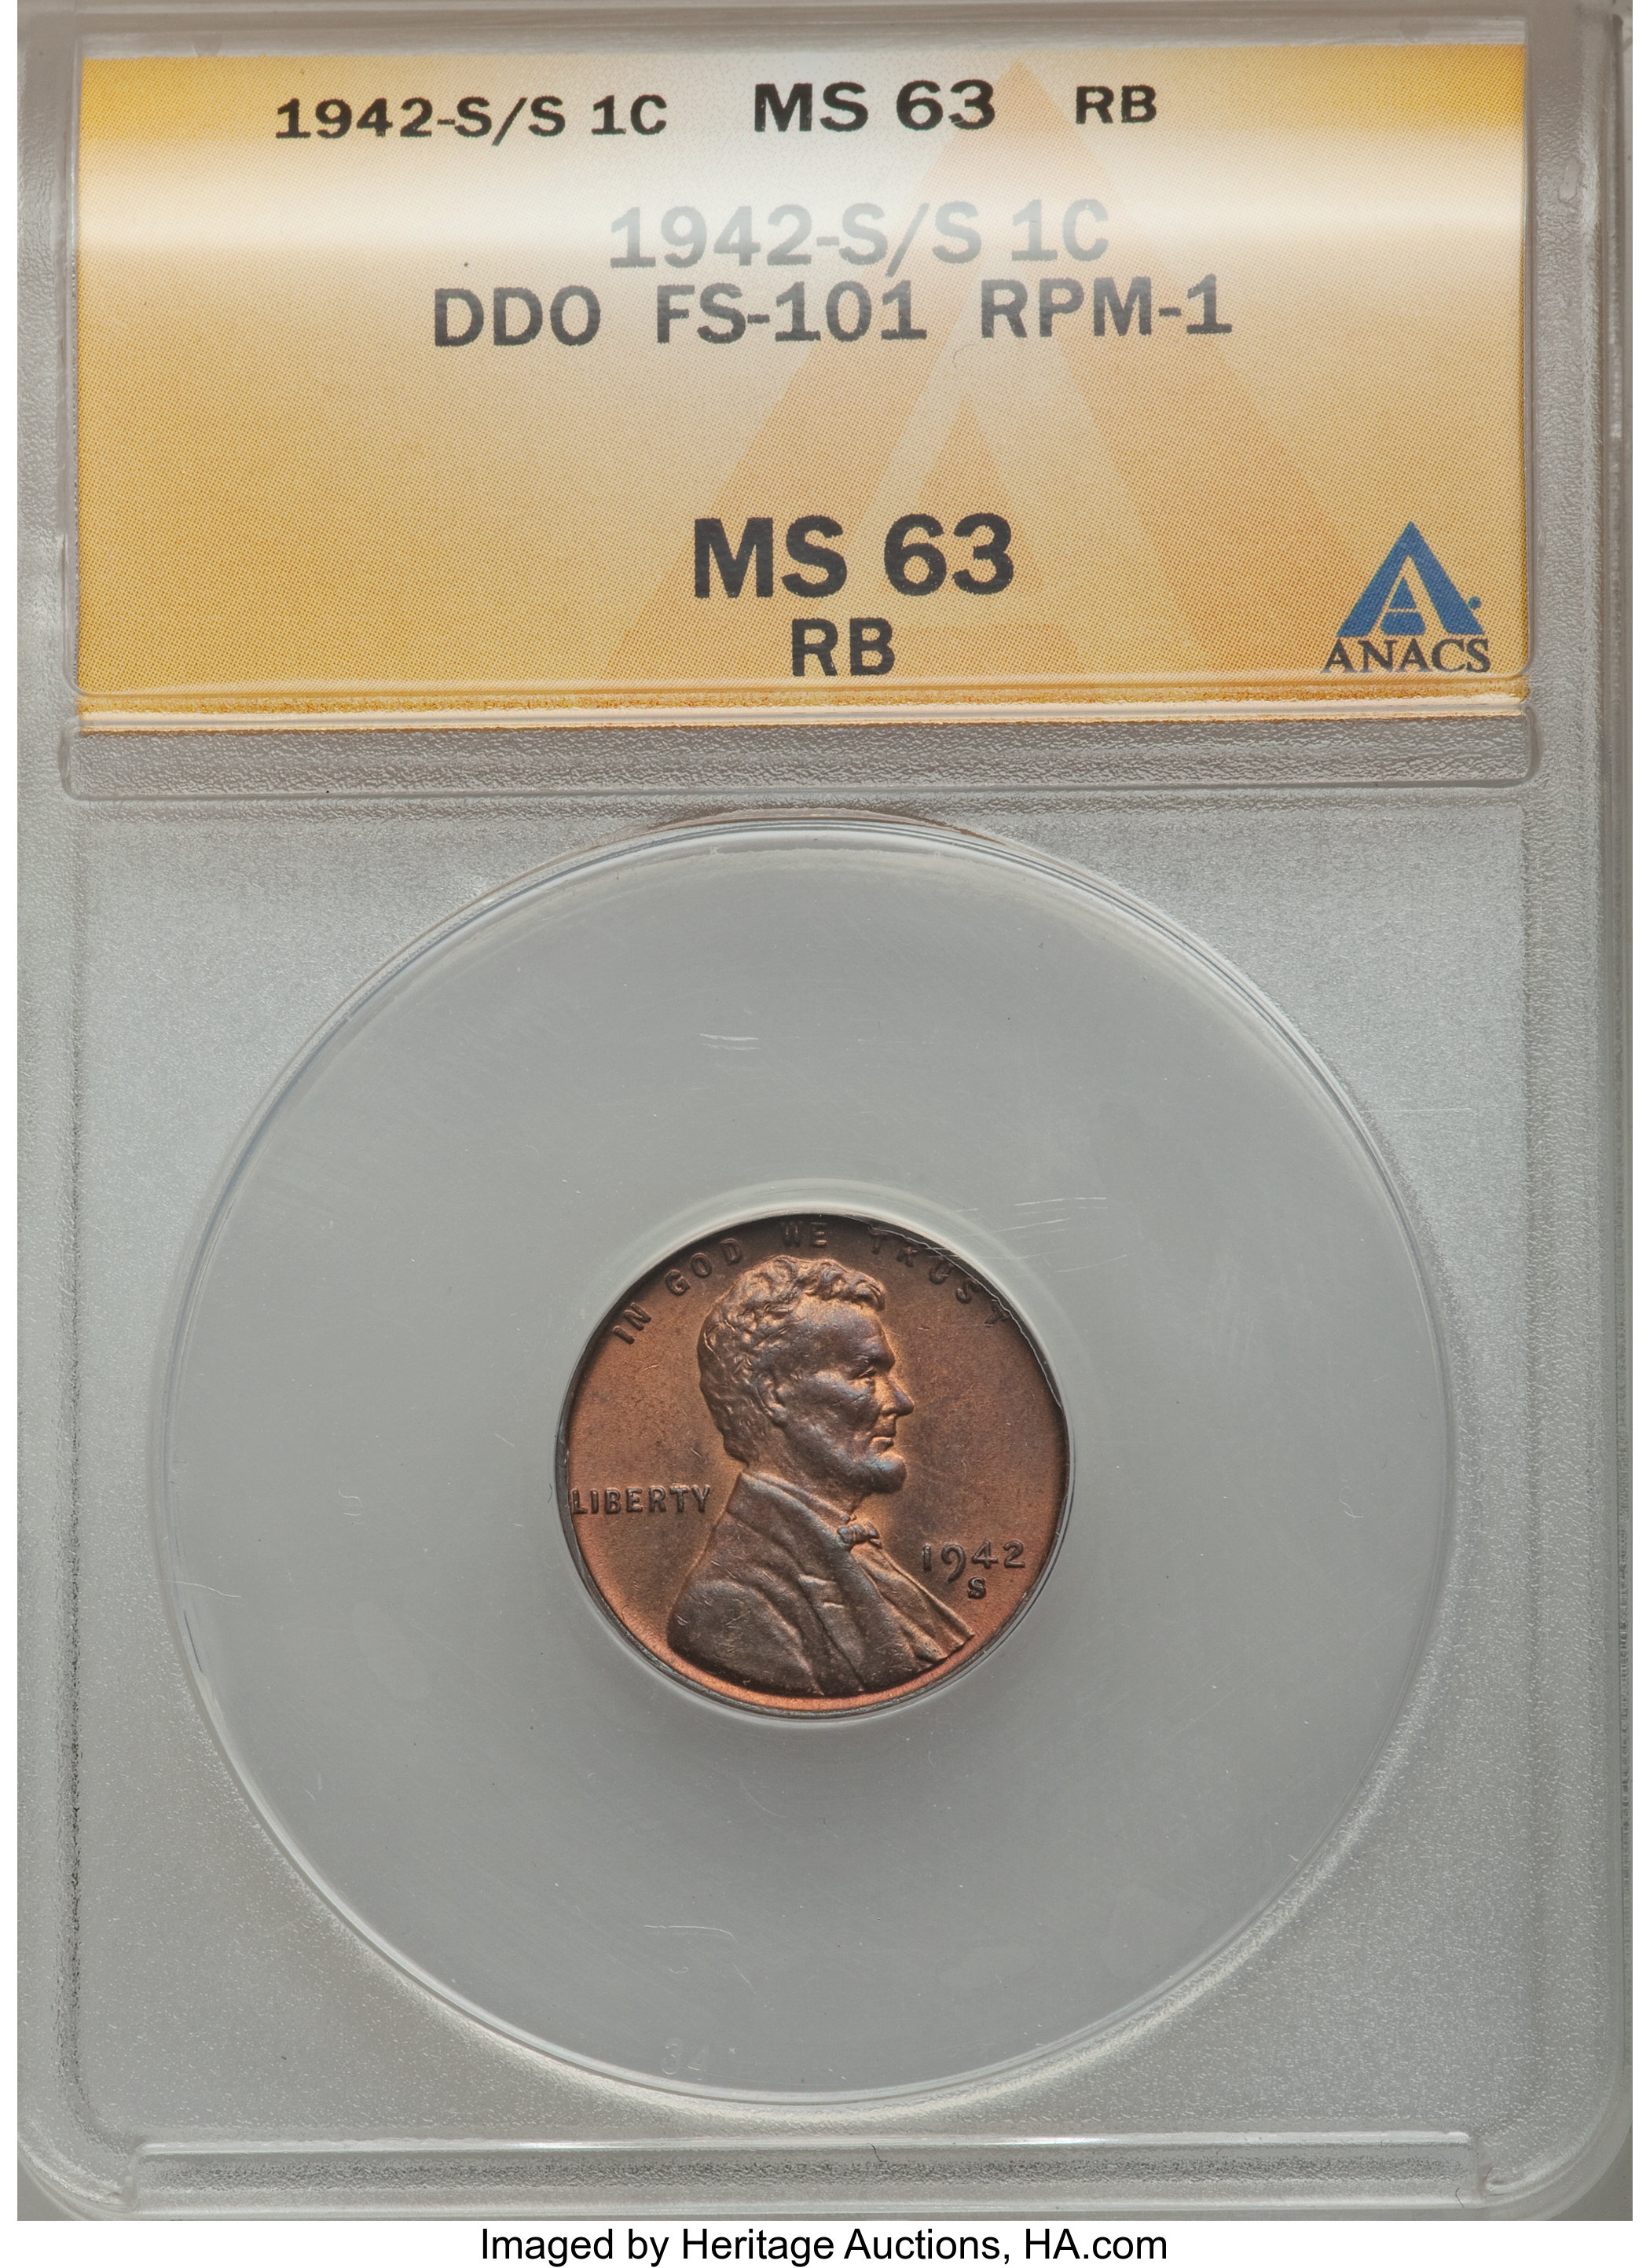 sample image for 1942-S  RB